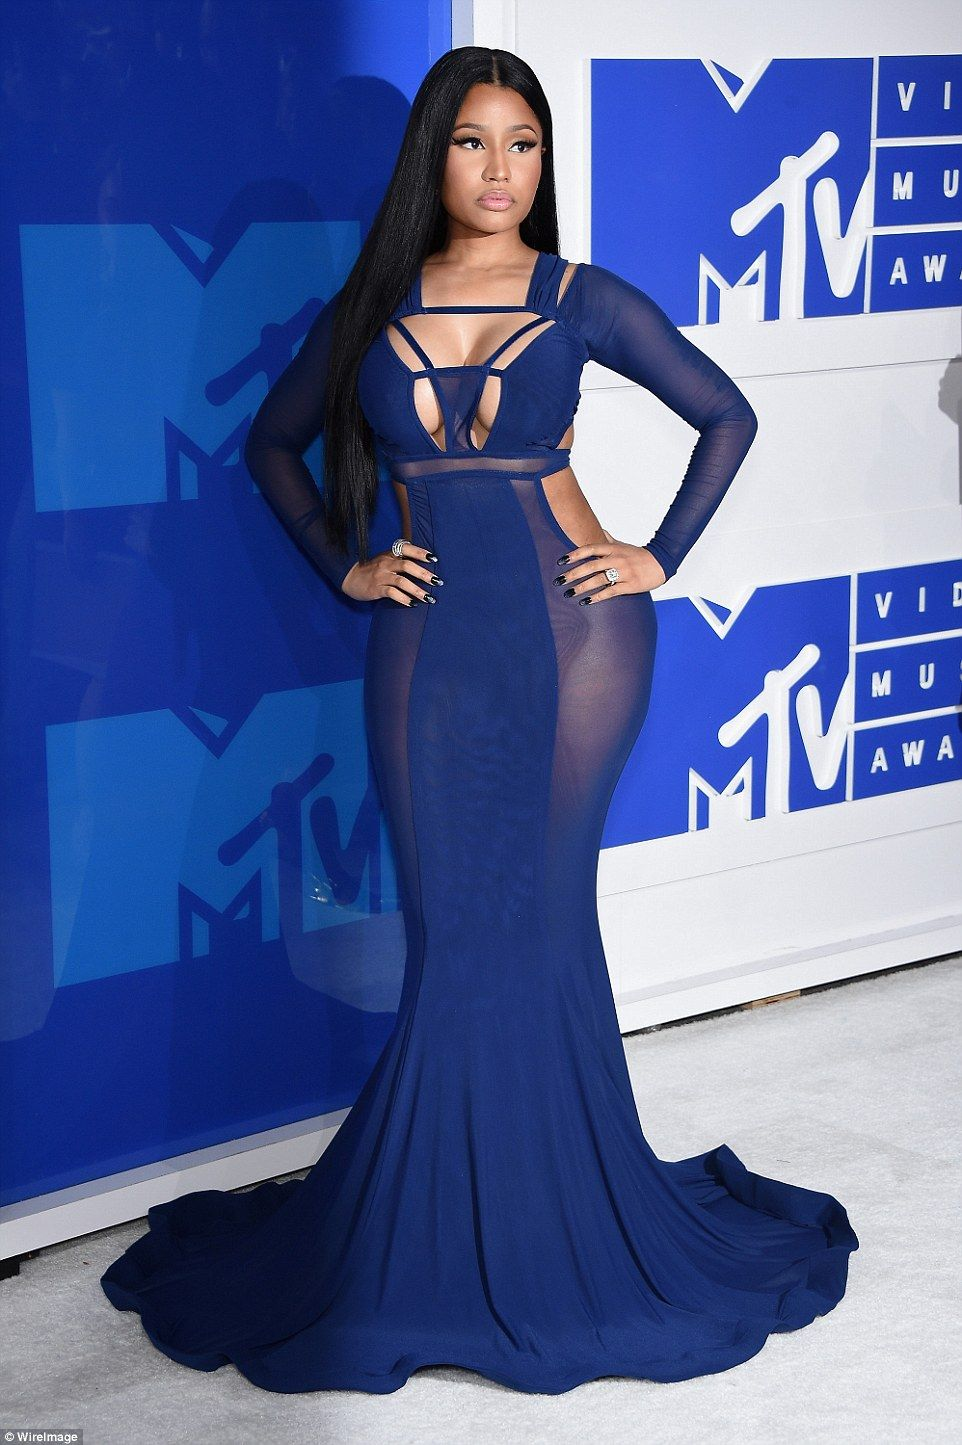 Watch Kim kardashian ariana grande nicki minaj sheer dresses mtv vma video